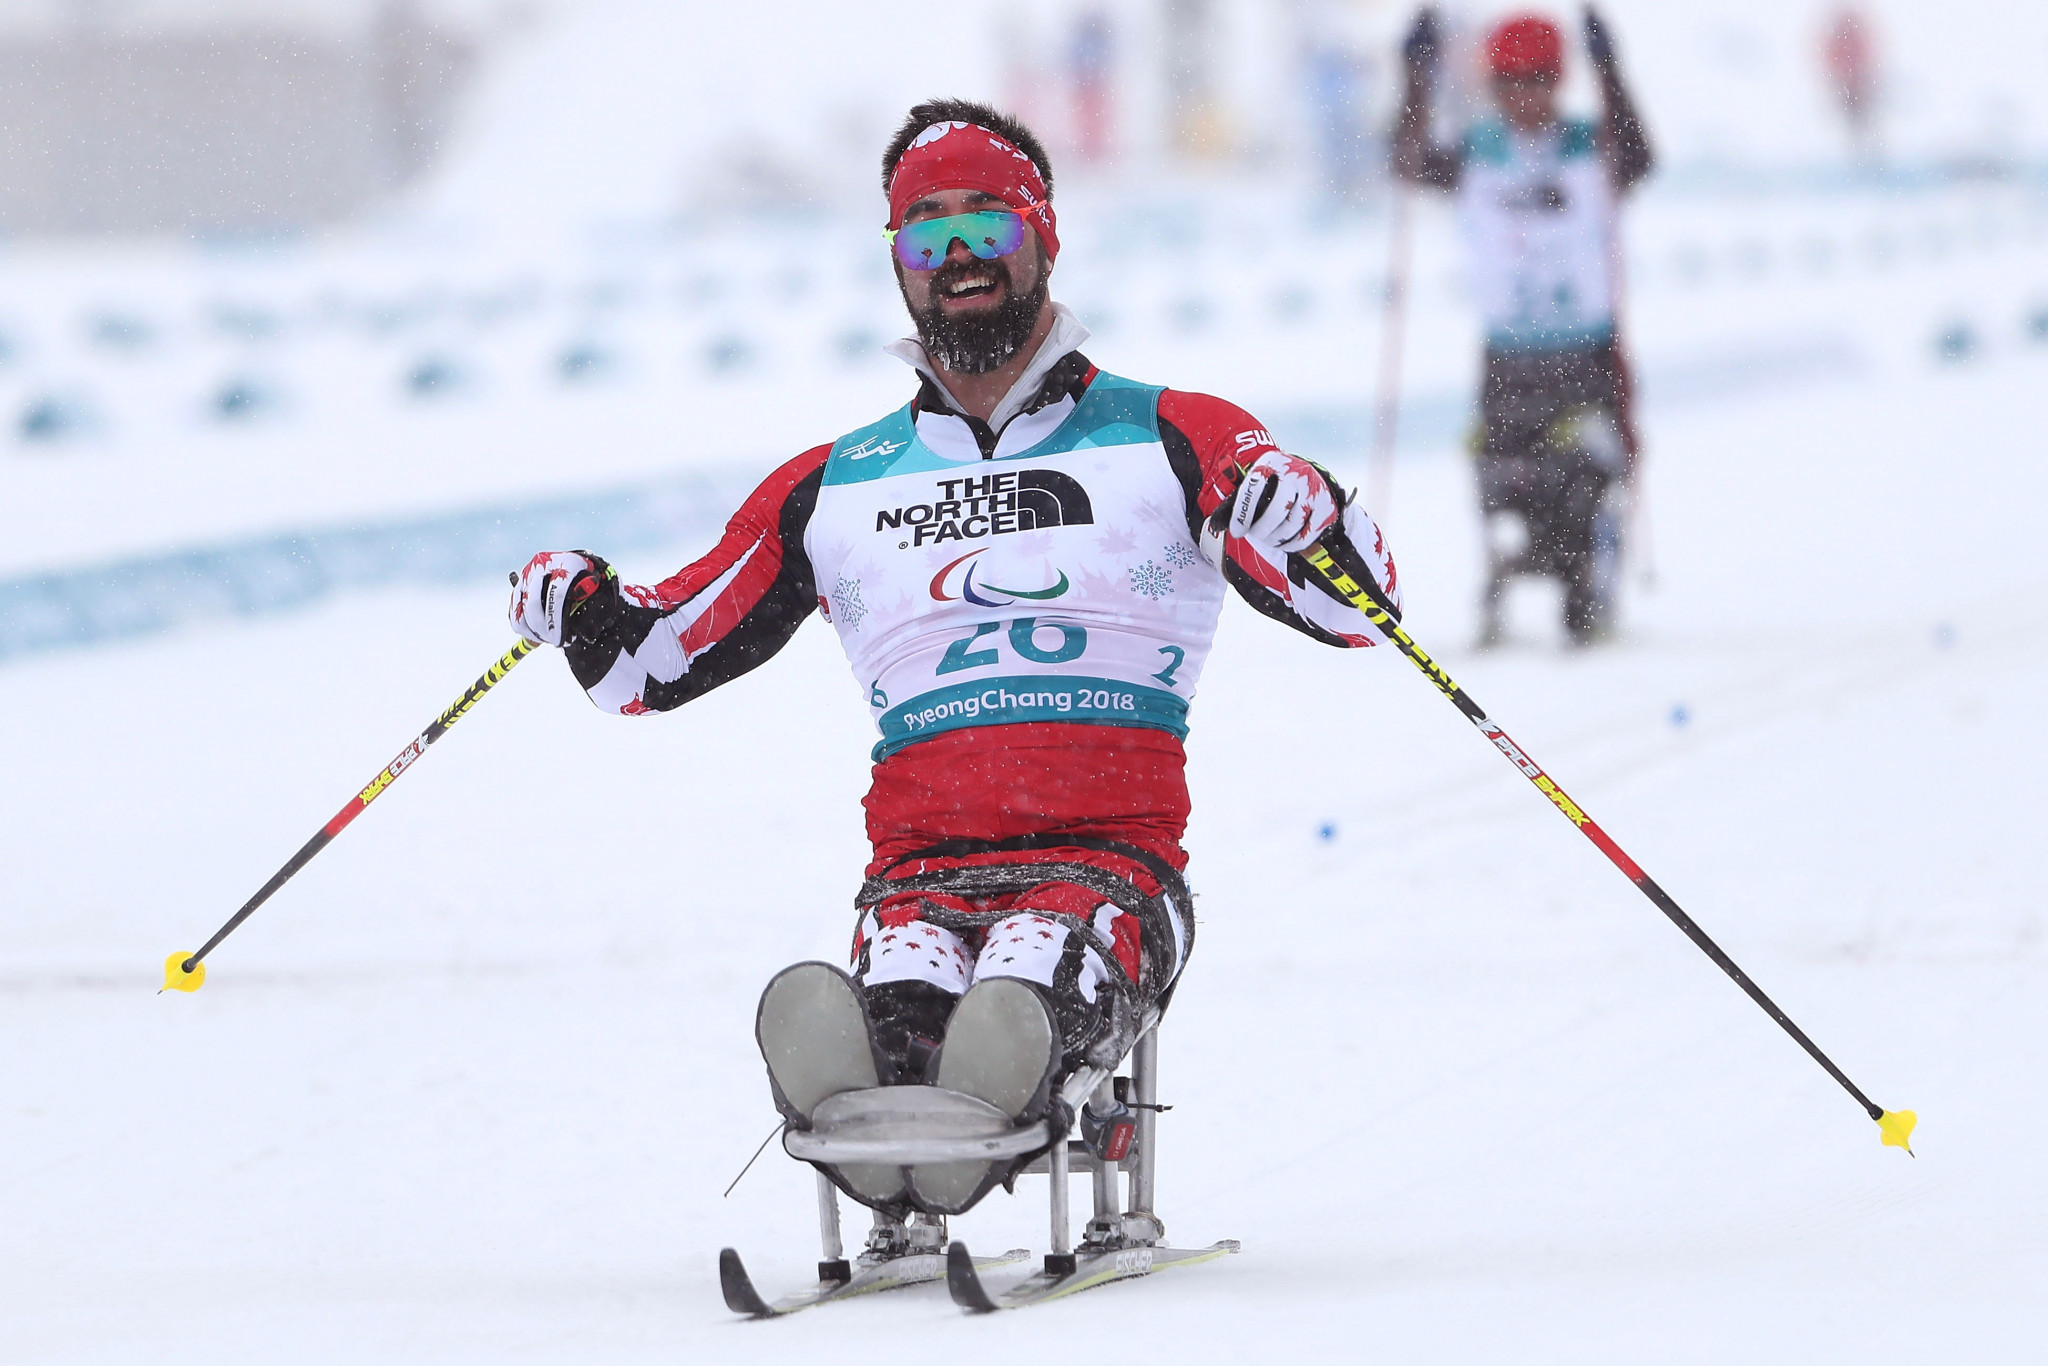 Canada's Collin Cameron is one of two Nordic skiers on the nominees list ©Getty Images